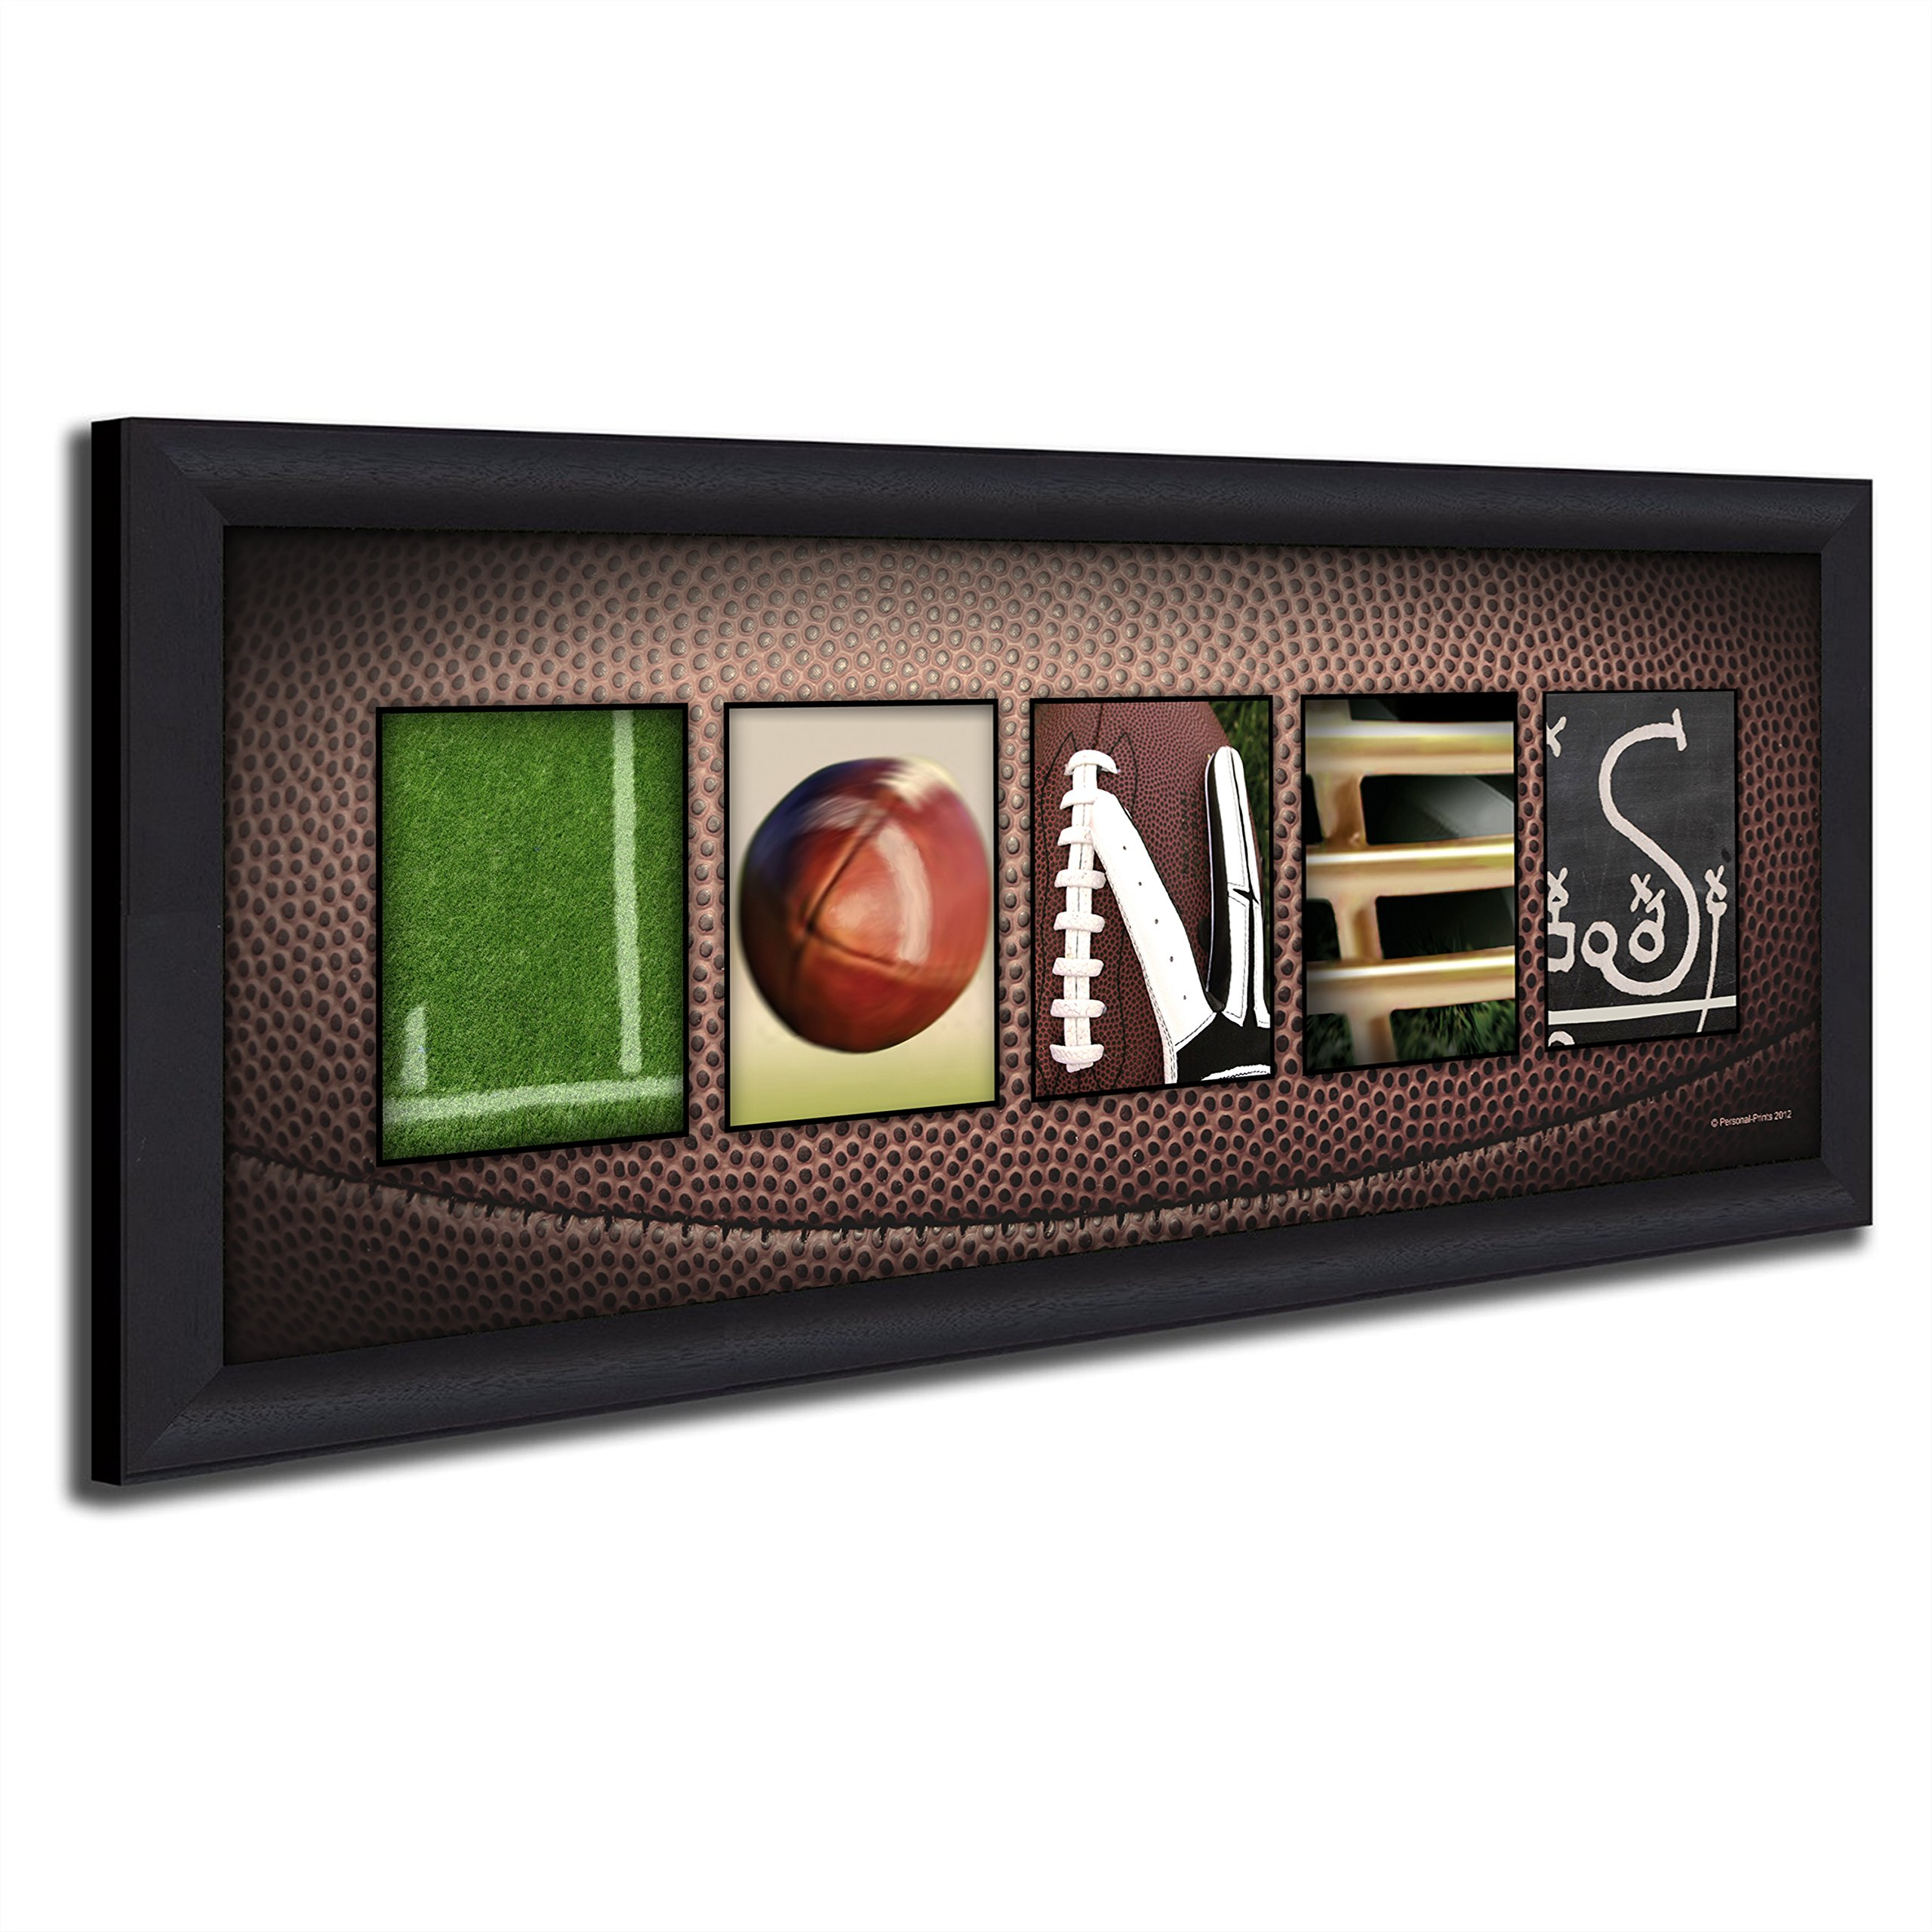 Framed Canvas - Personalized Football Name Art Decor print for man cave, boys room, or office!